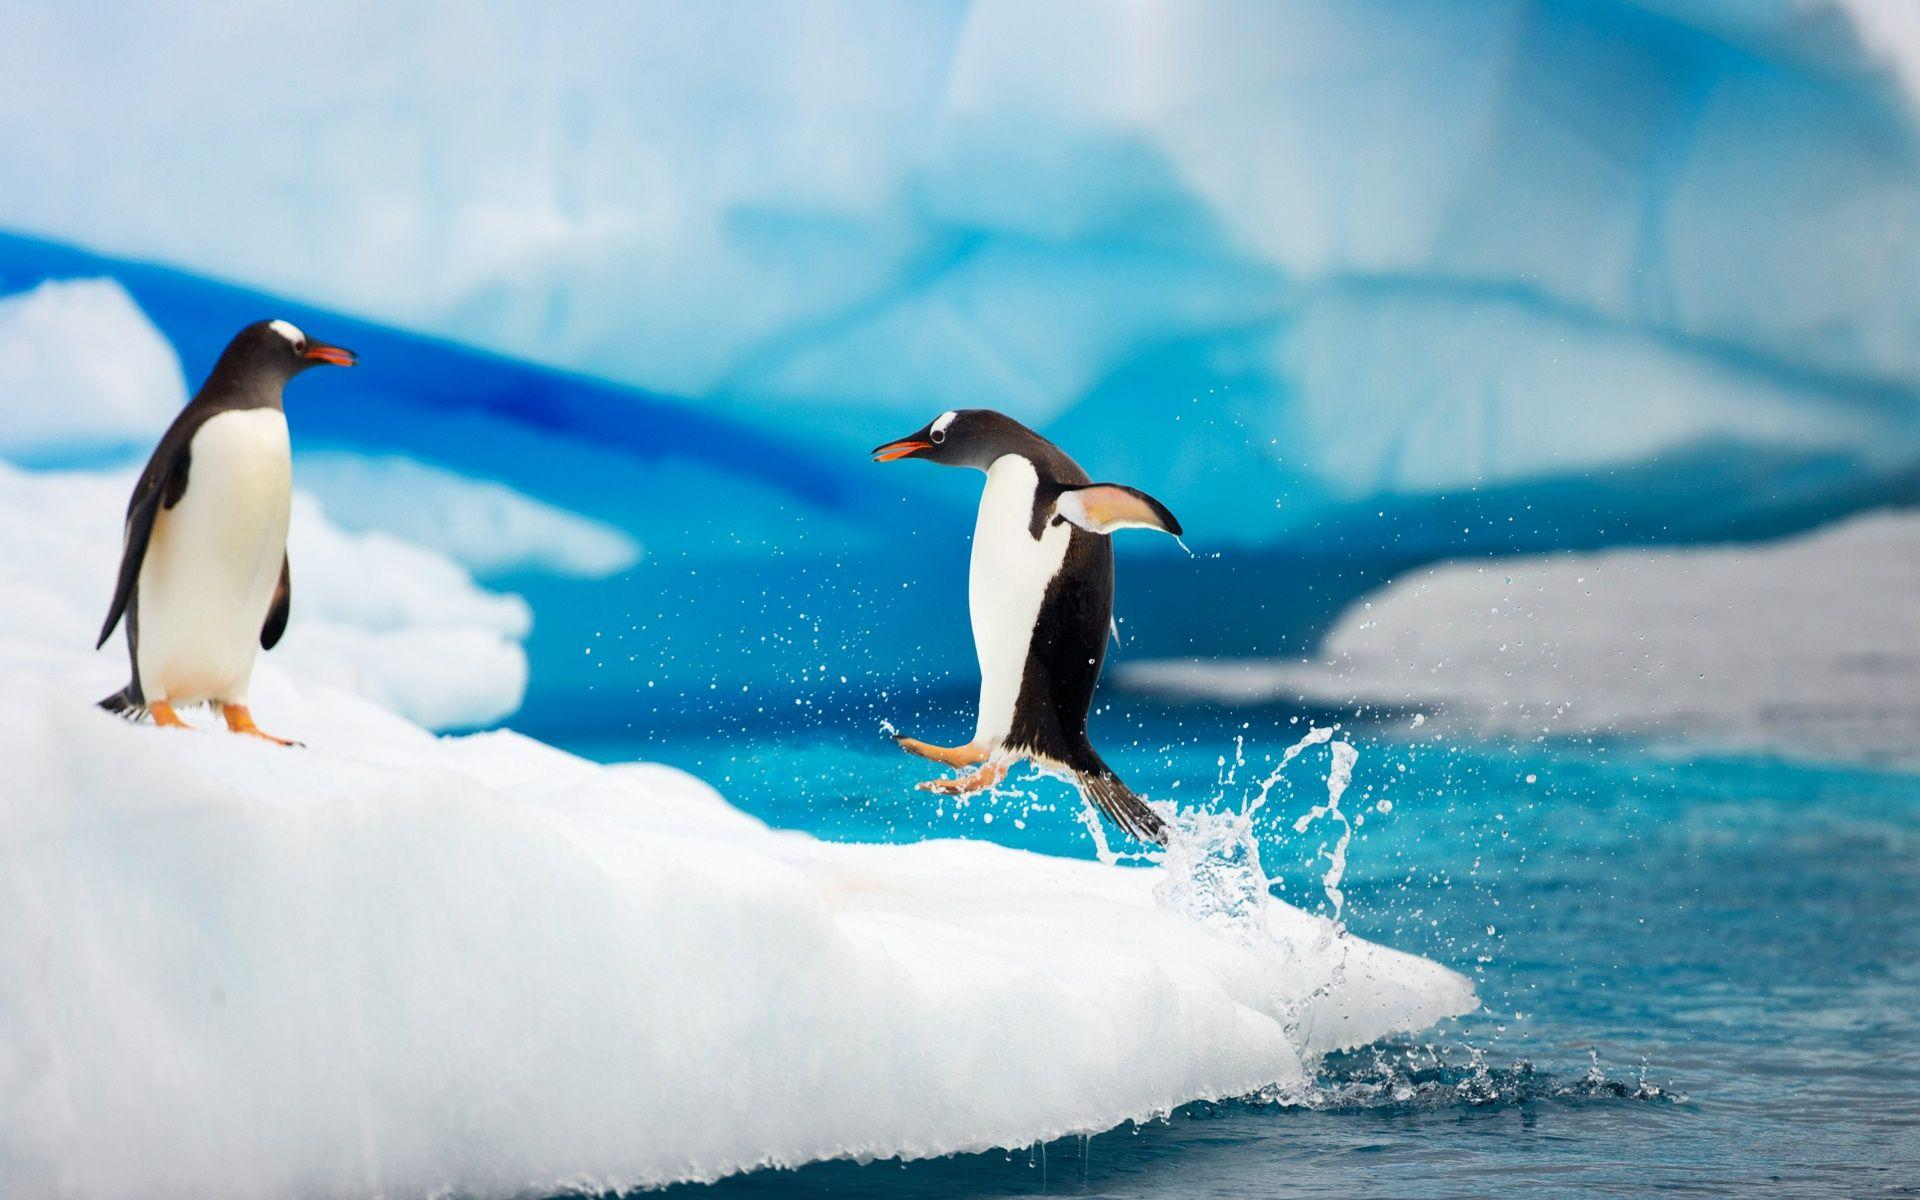 Wallpapers Tagged With ANTARCTICA | ANTARCTICA HD Wallpapers | Page 1